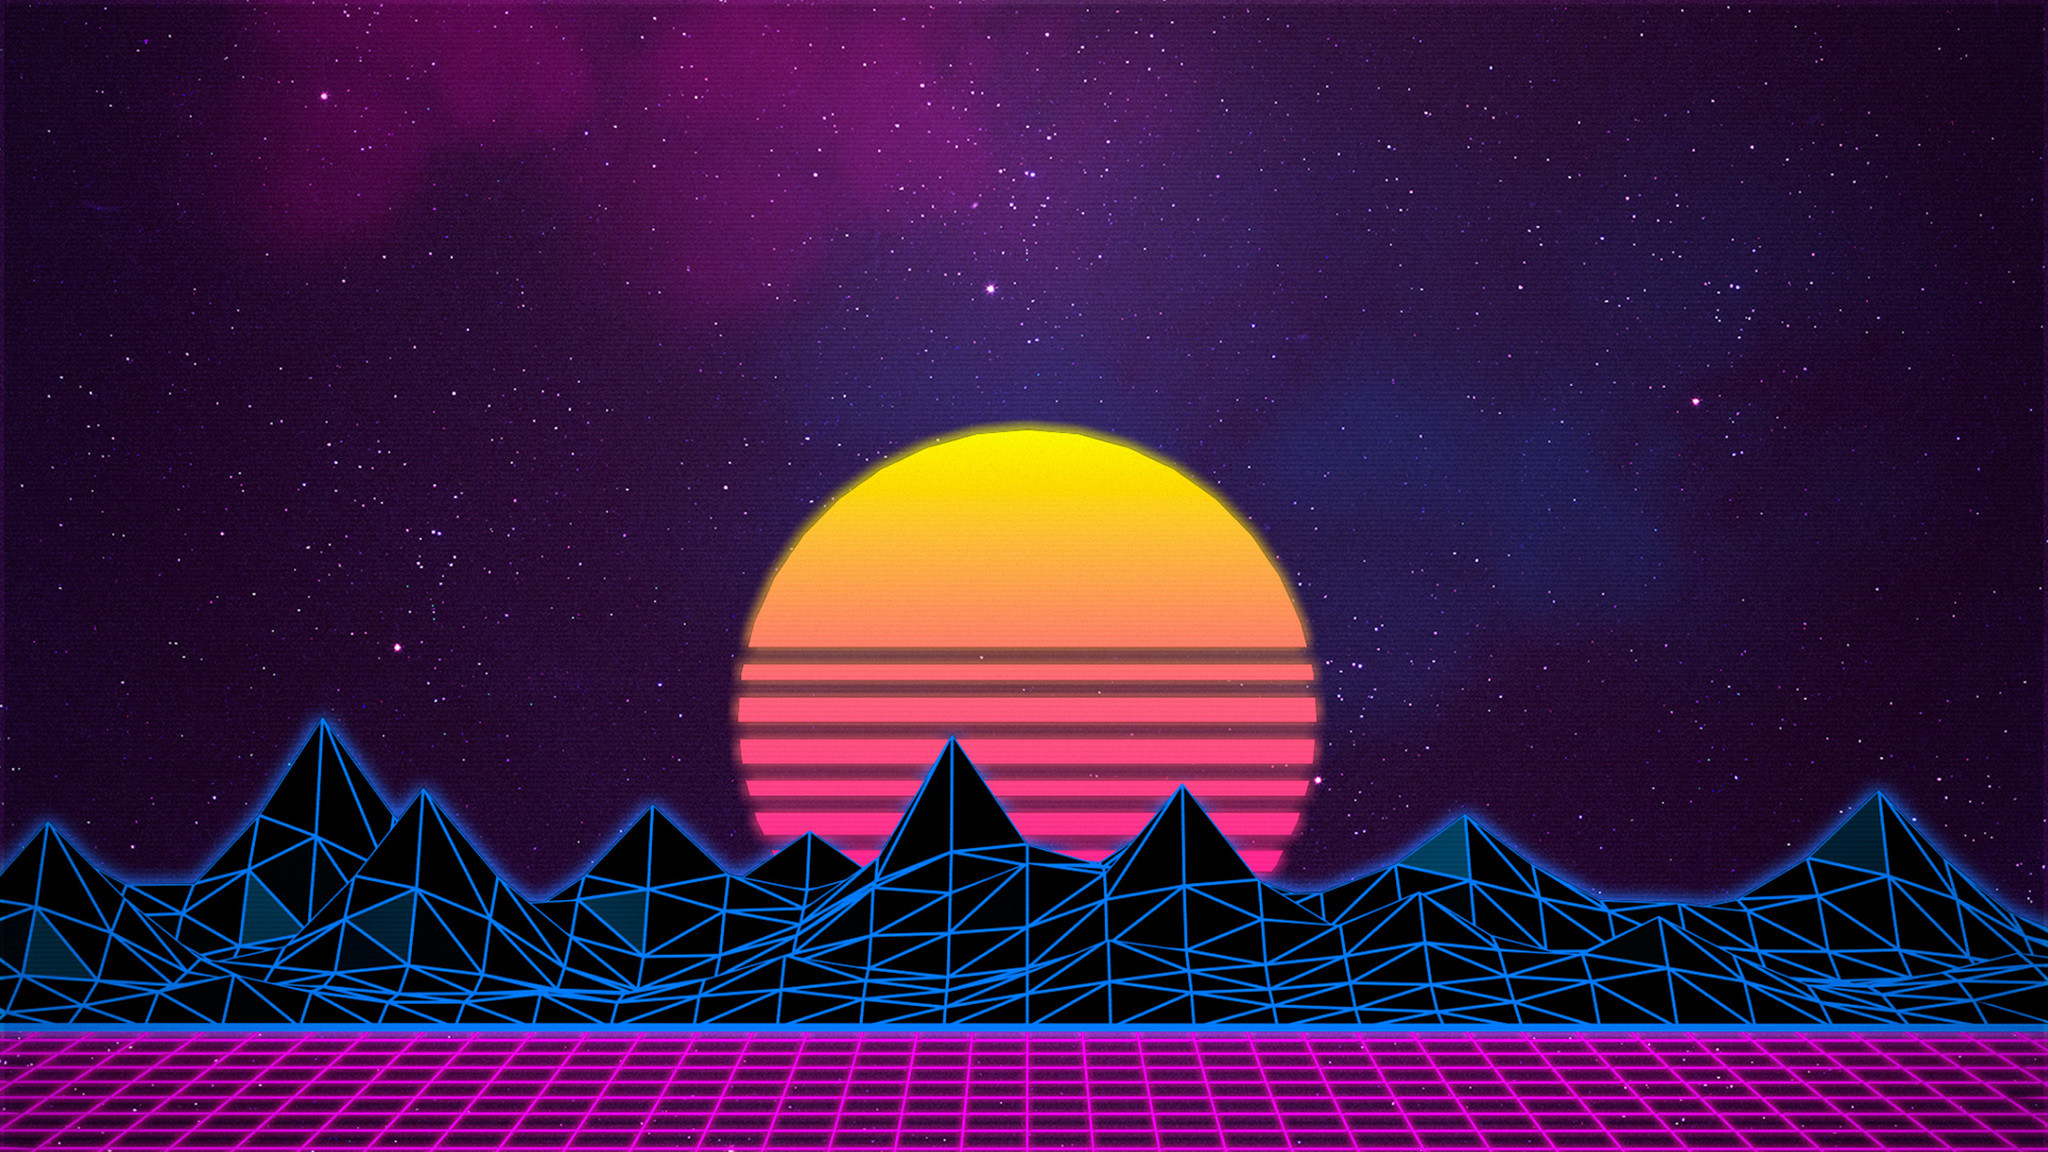 20 X 20 Pictures  20x20 Retrowave Grid Mountain 20x20 ...